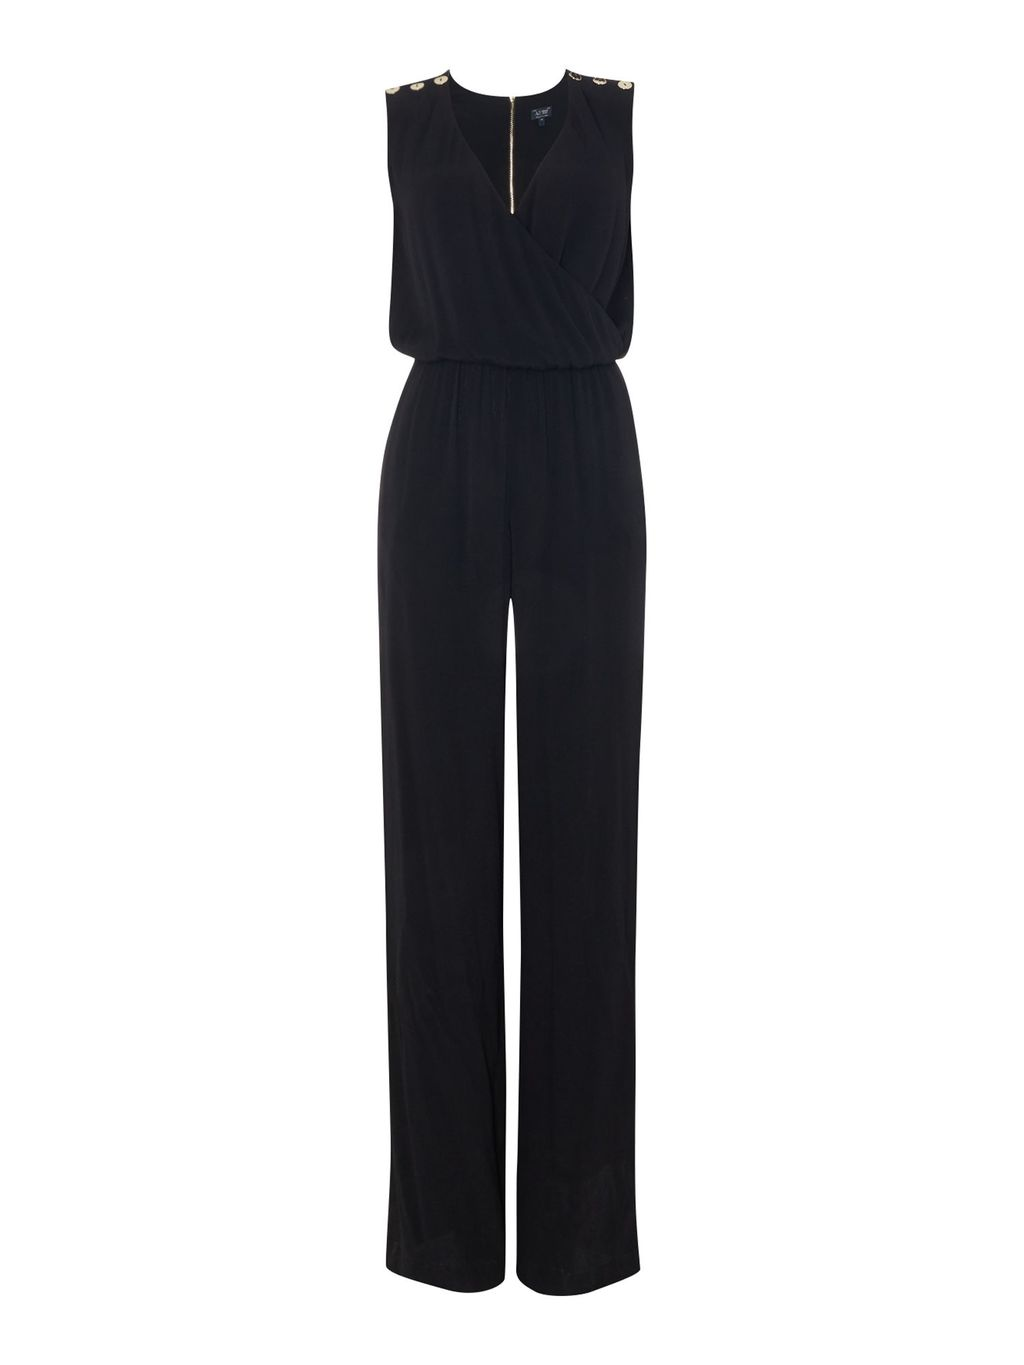 Sleeveless Button Shoulder Jumpsuit, Black - length: standard; pattern: plain; sleeve style: sleeveless; predominant colour: black; occasions: evening; fit: body skimming; neckline: peep hole neckline; fibres: viscose/rayon - 100%; sleeve length: sleeveless; style: jumpsuit; pattern type: fabric; texture group: jersey - stretchy/drapey; season: a/w 2016; wardrobe: event